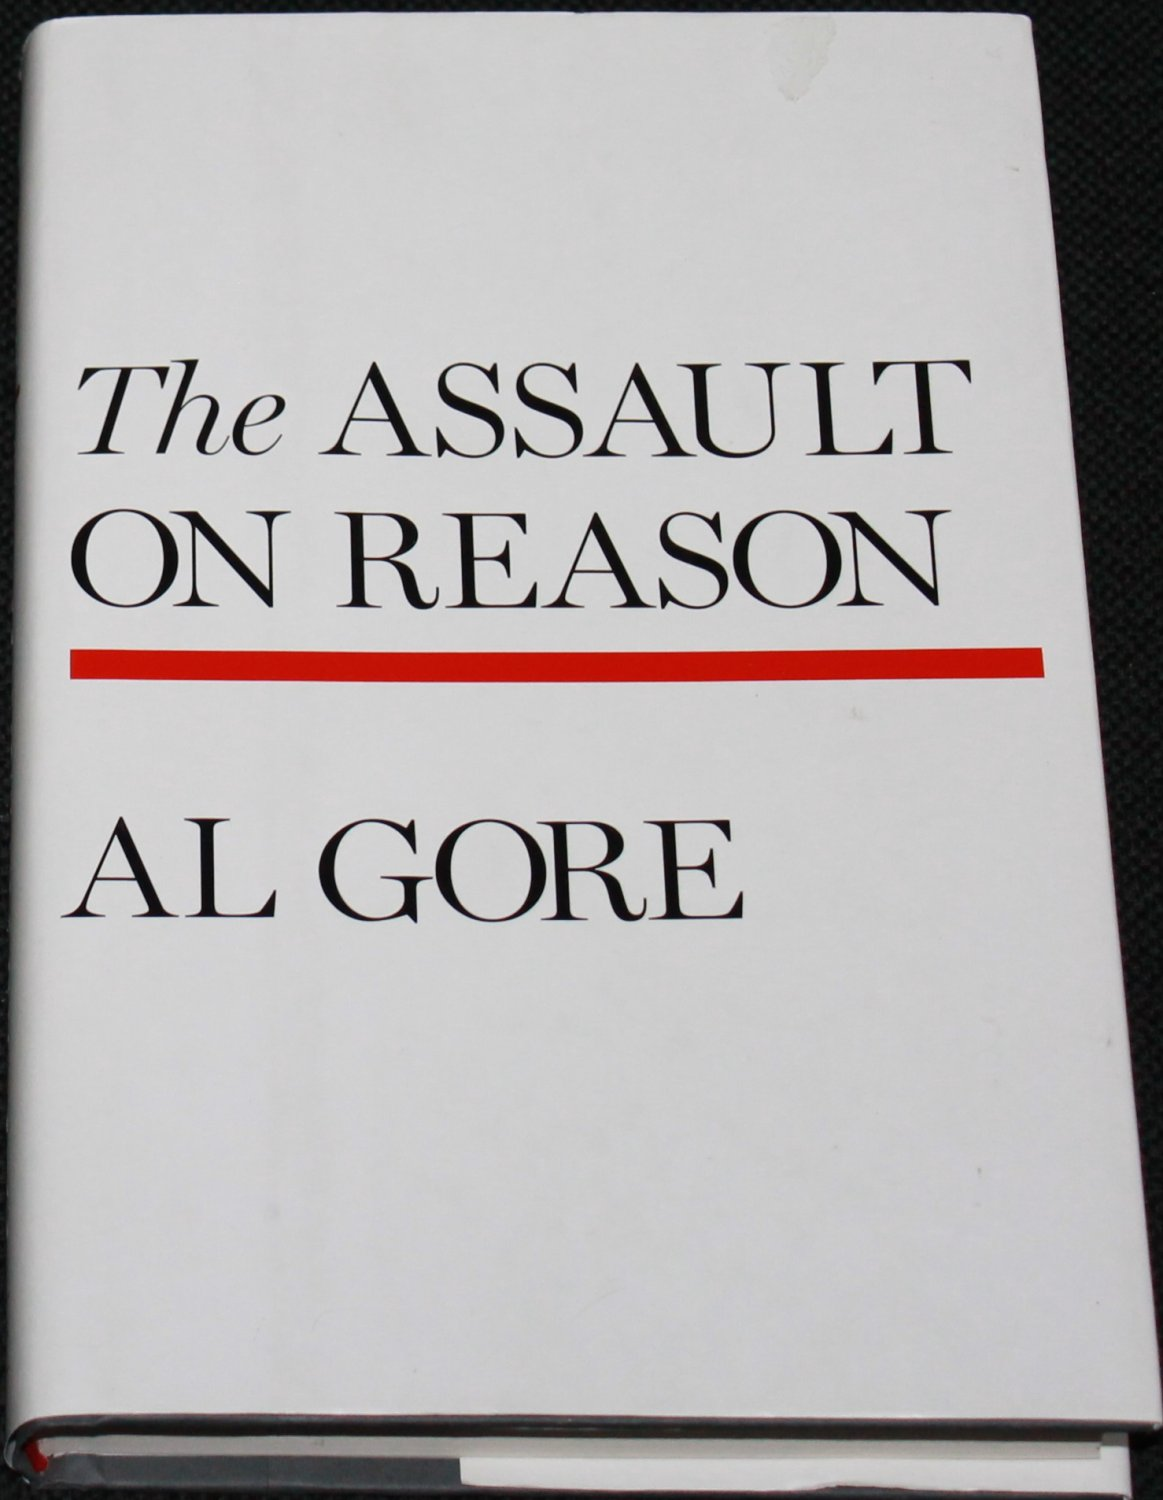 The Assault on Reason by Al Gore - hardcover book